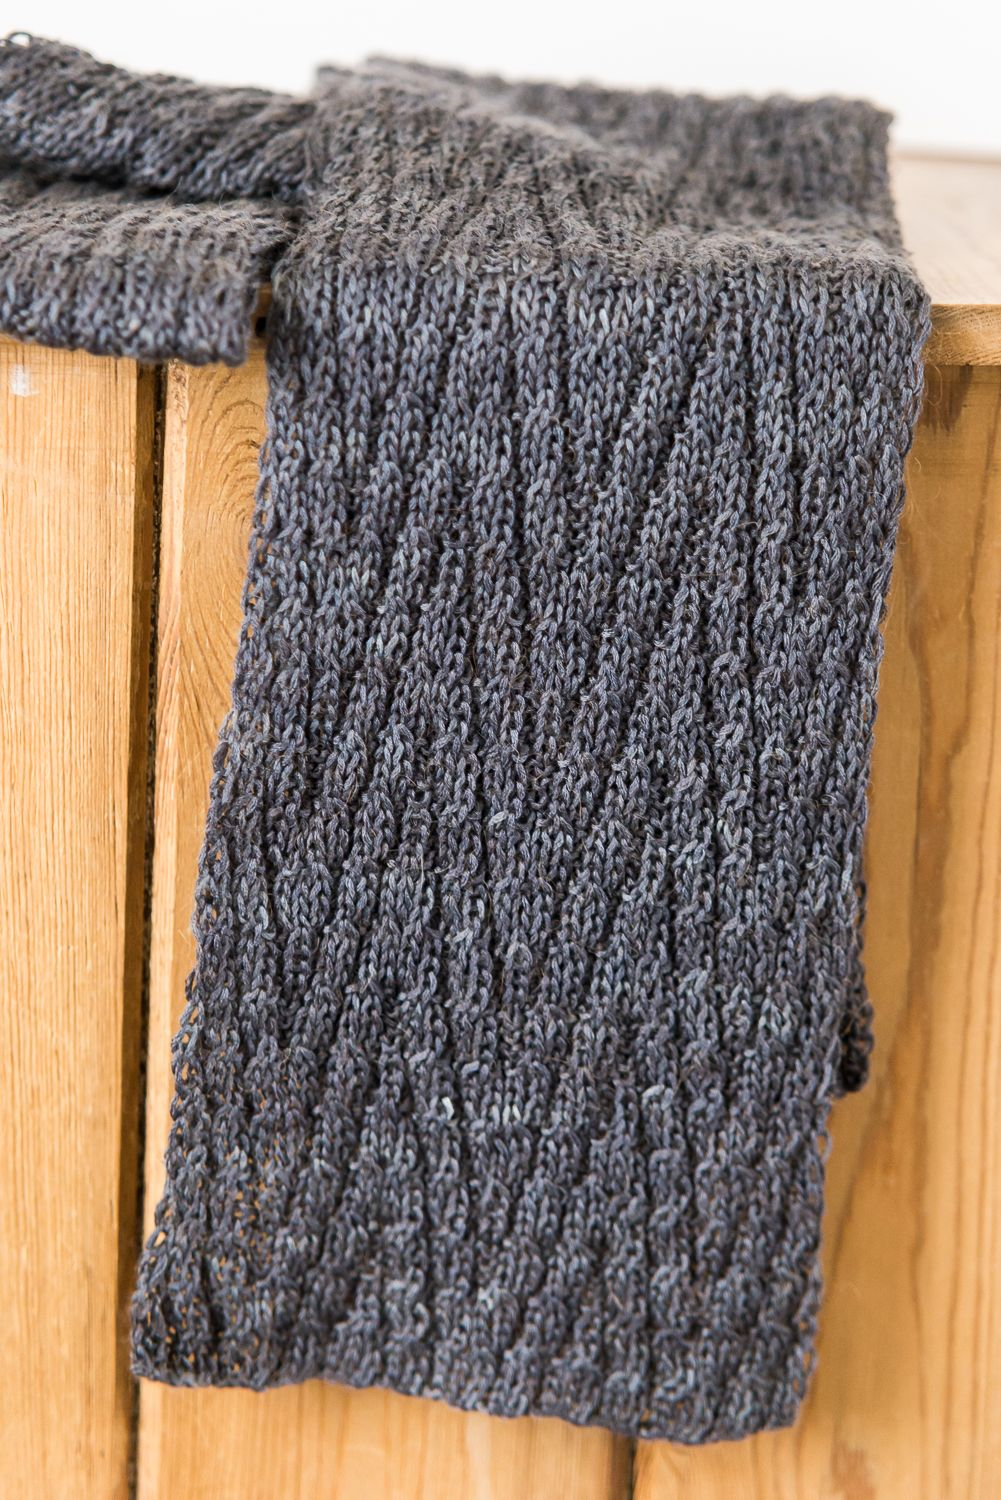 Chevron Scarf Knitting Pattern : Pin by Erin Gough on To Knit & Crochet Pinterest